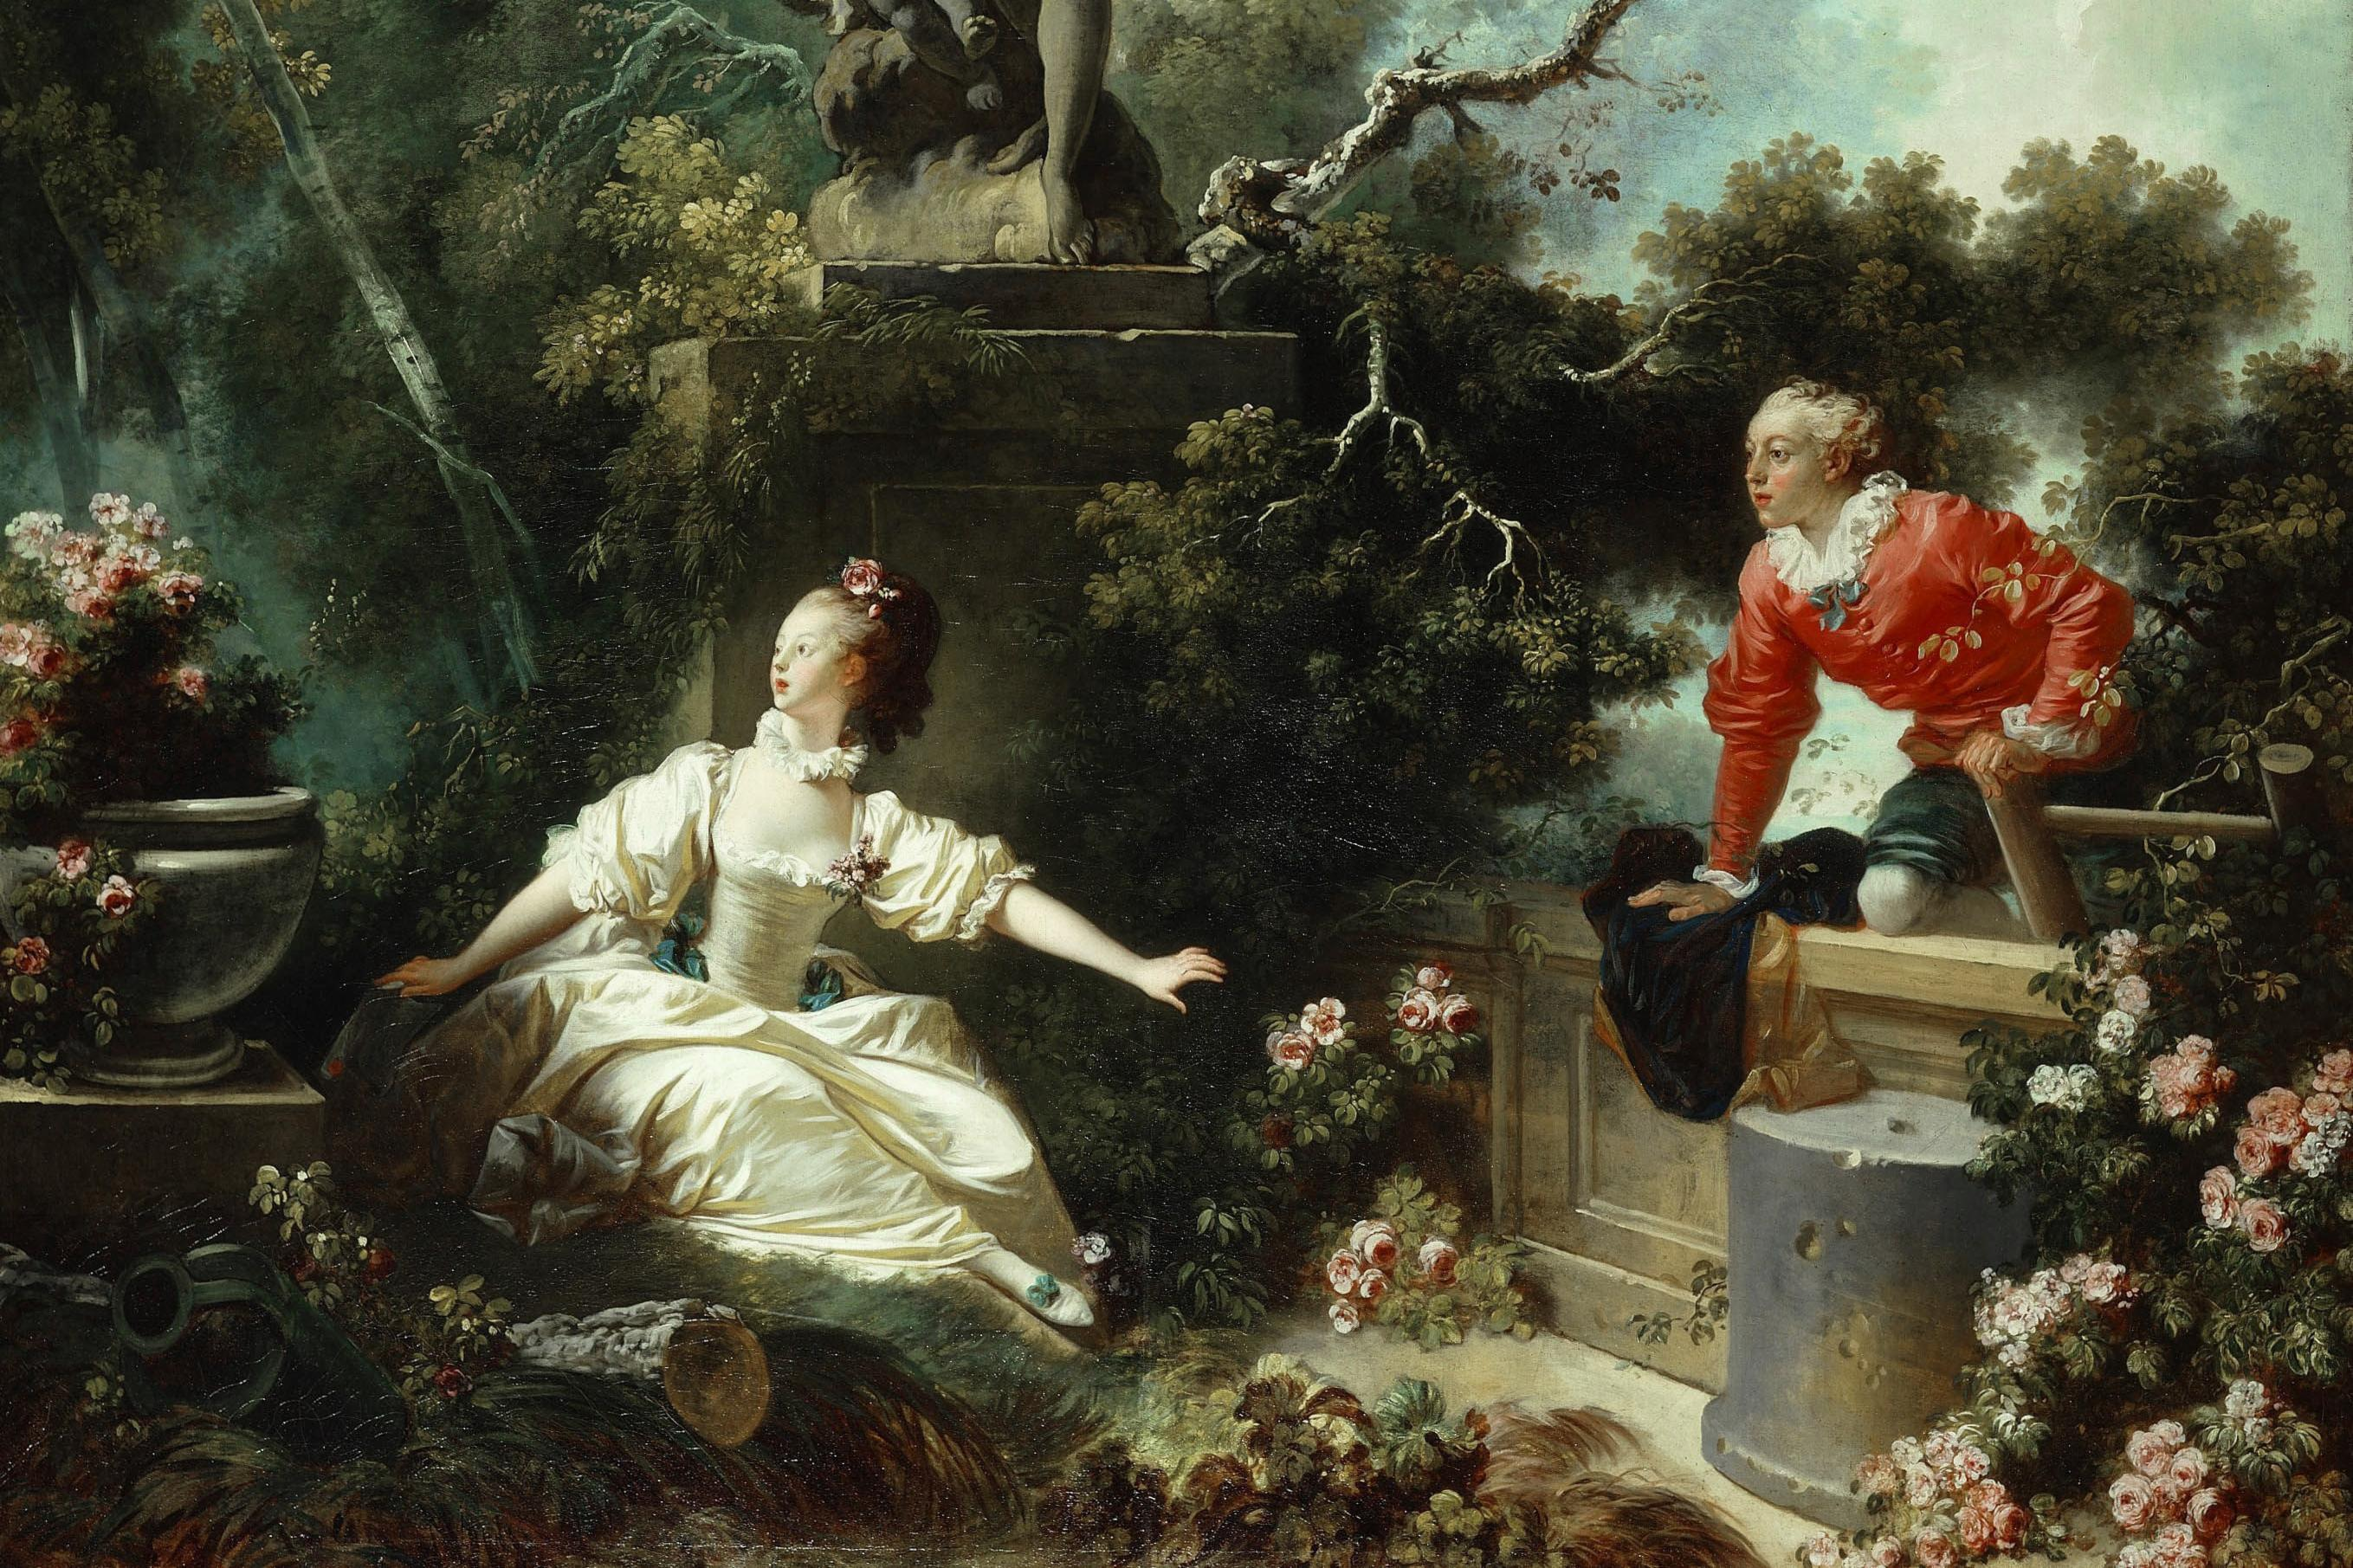 2b27e2c72df3 10 Artworks That Defined the Rococo Style - Artsy